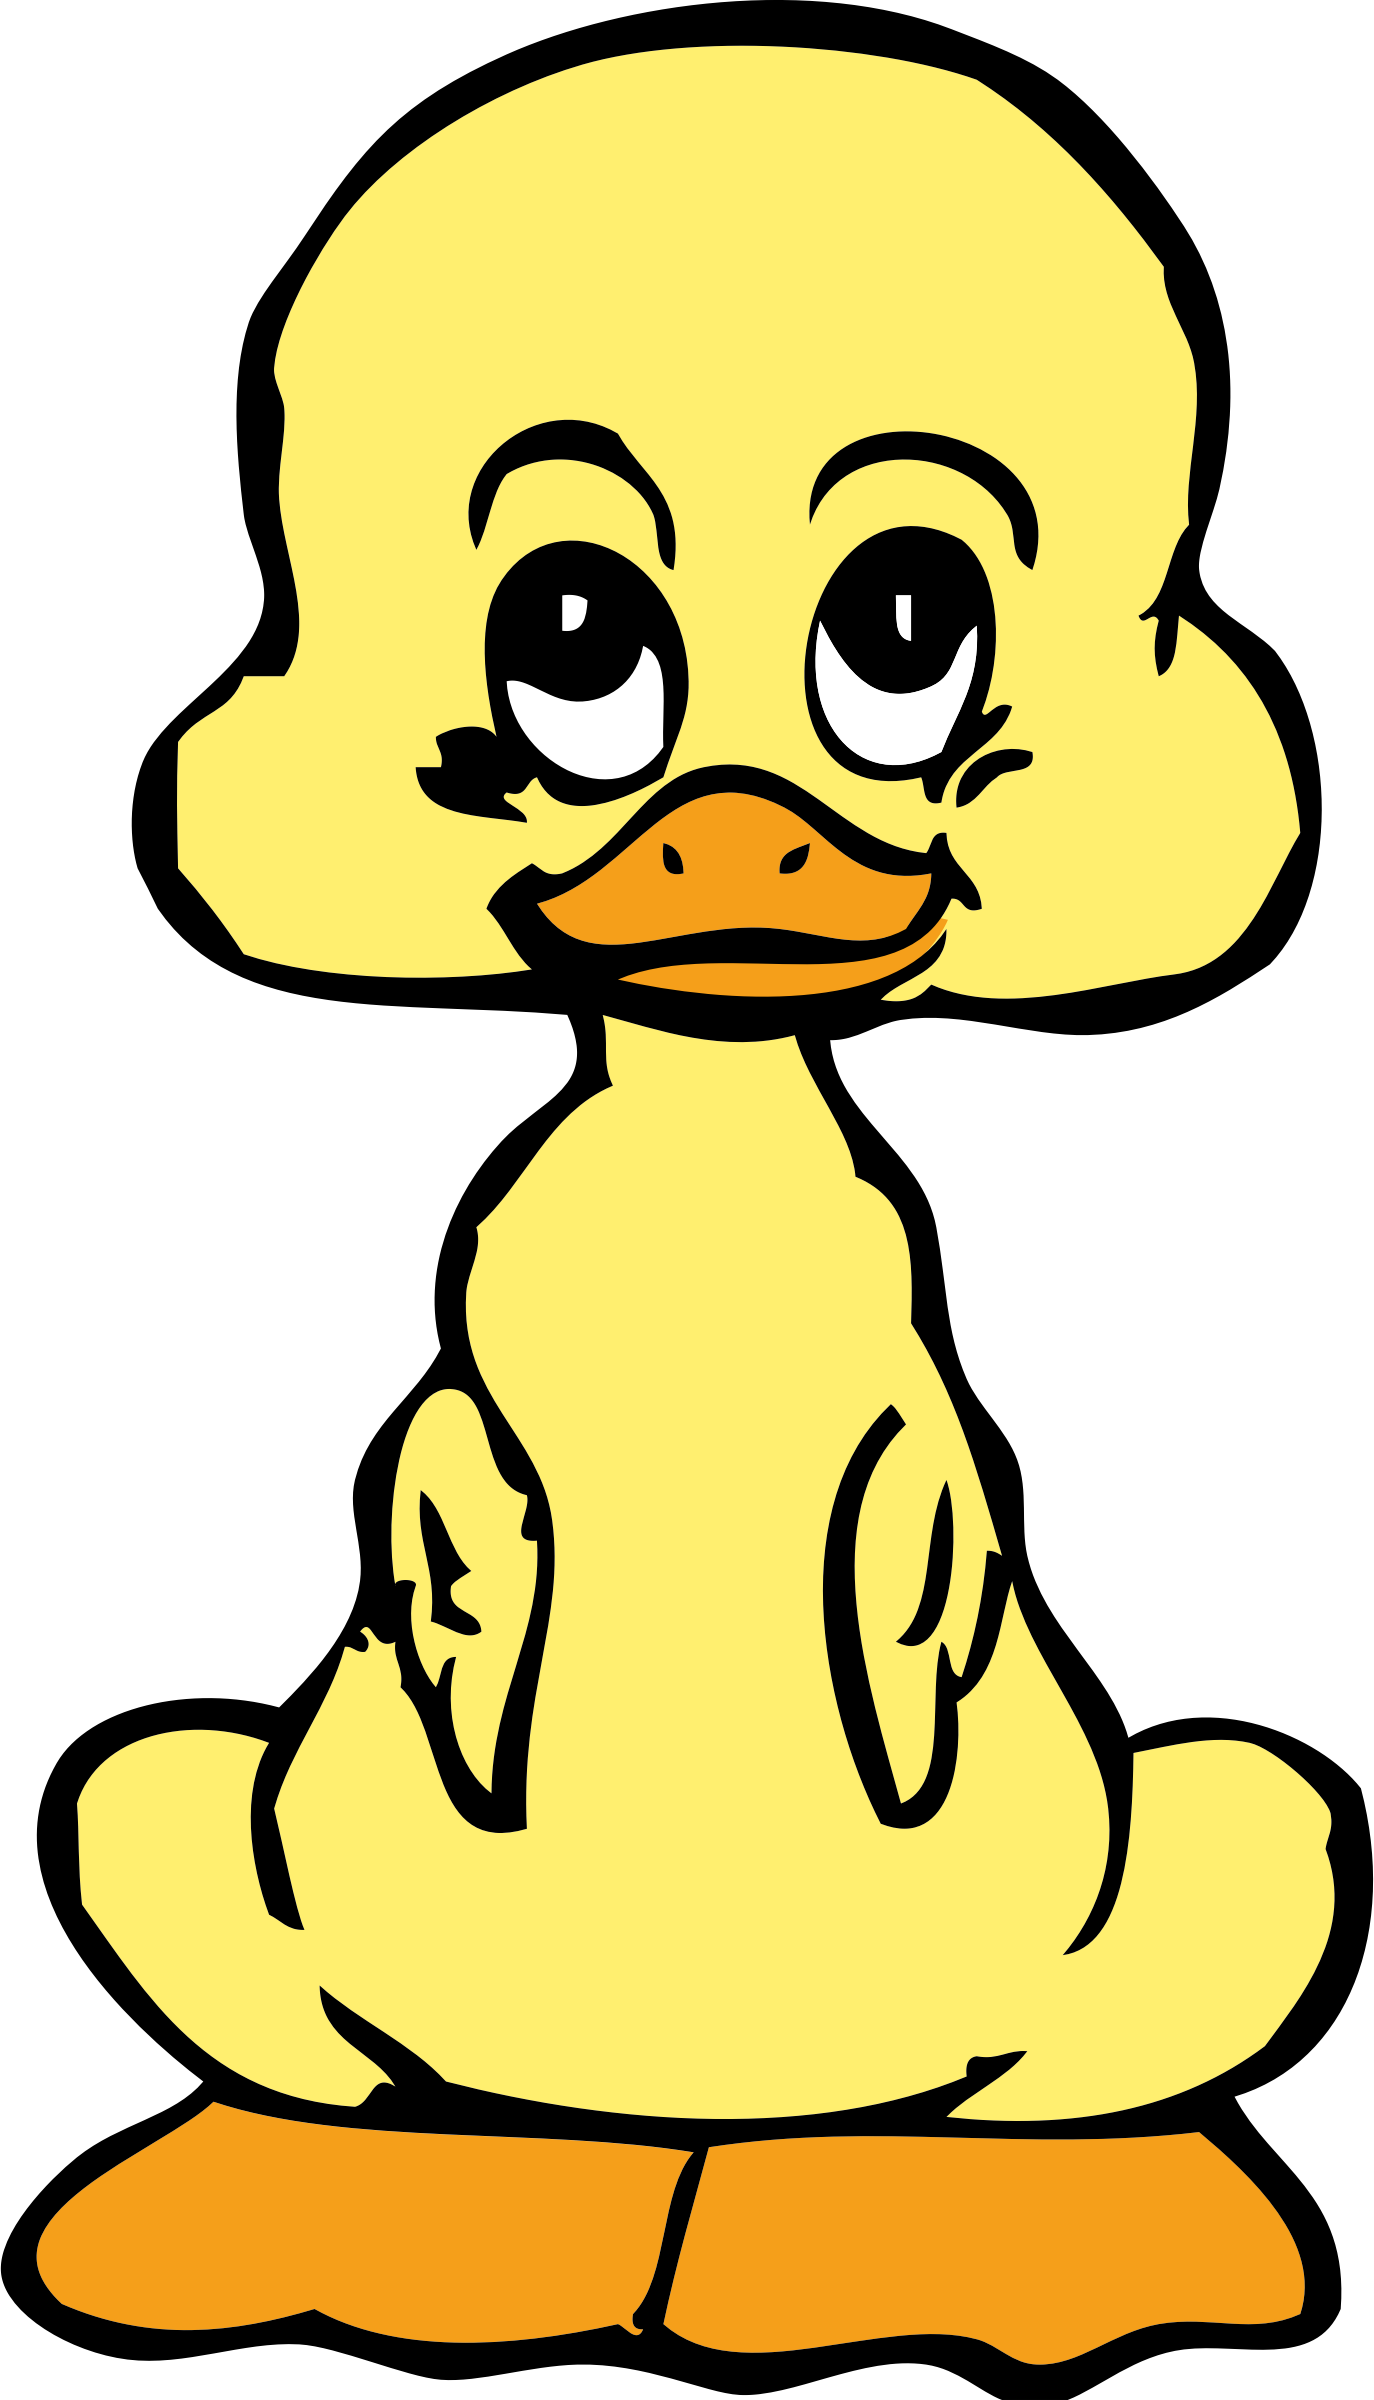 Draw clipart math. Baby duck big image